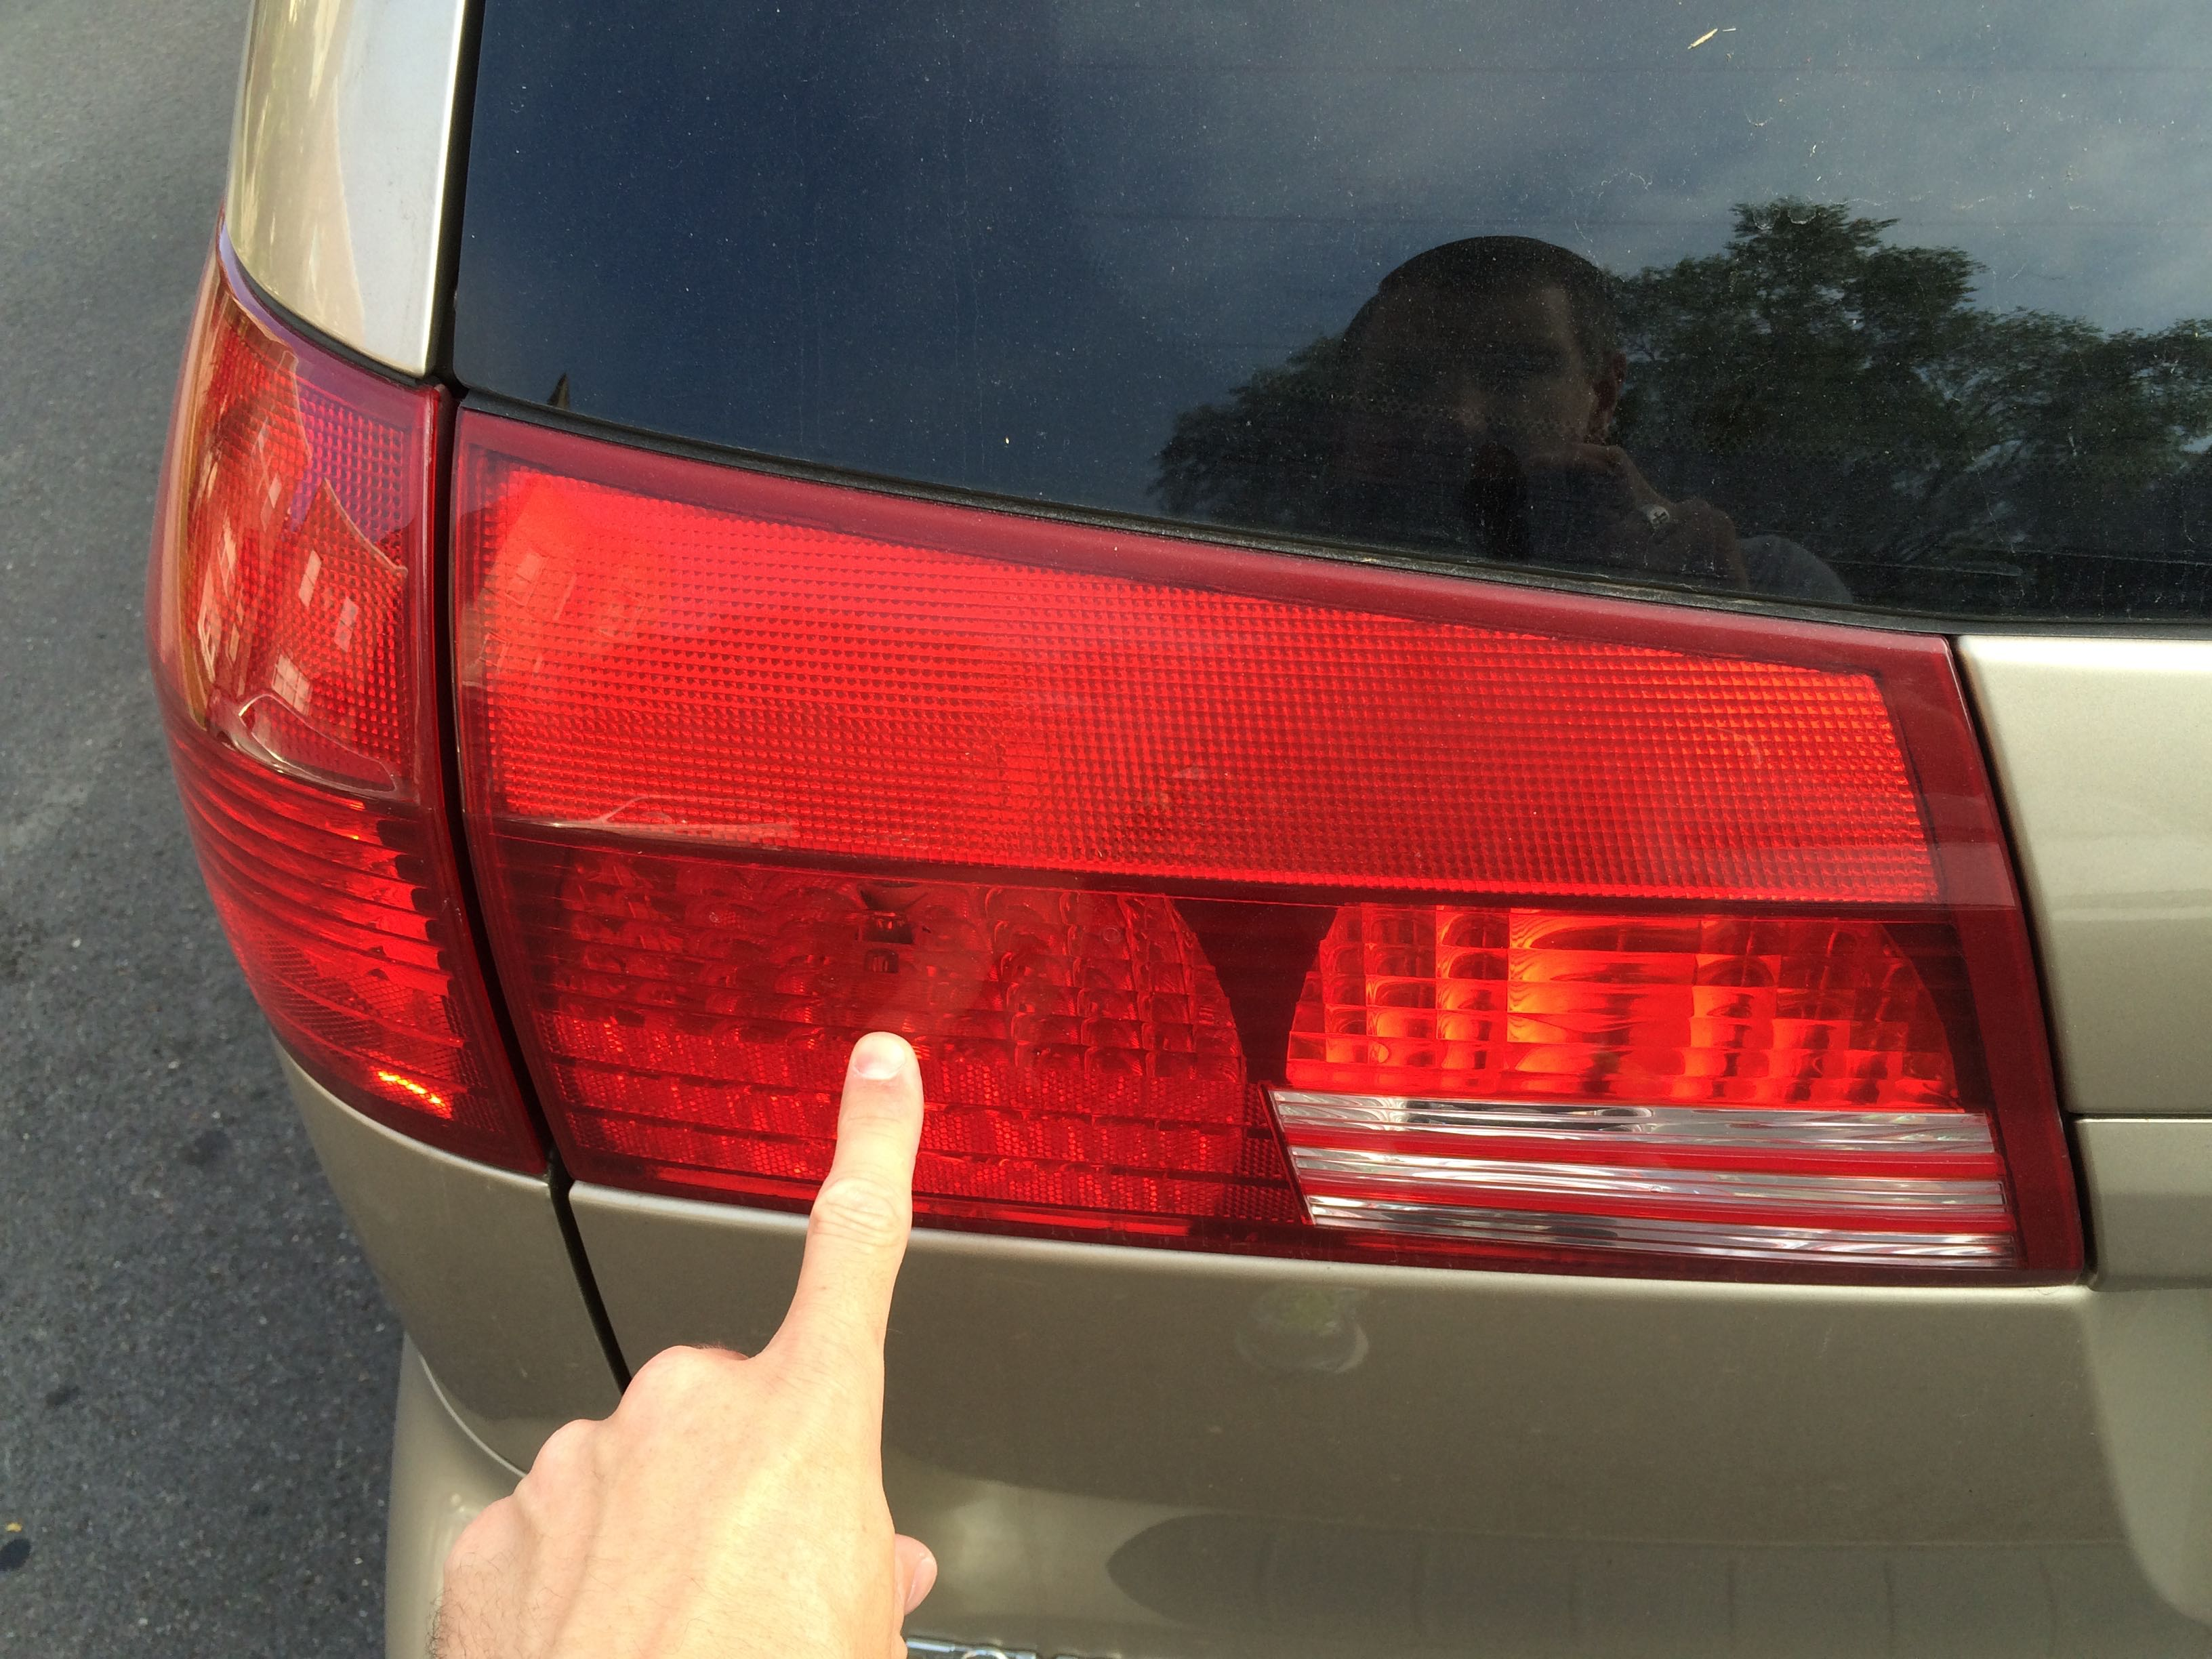 How To Replace Toyota Sienna Liftgate Tail Lights - Share